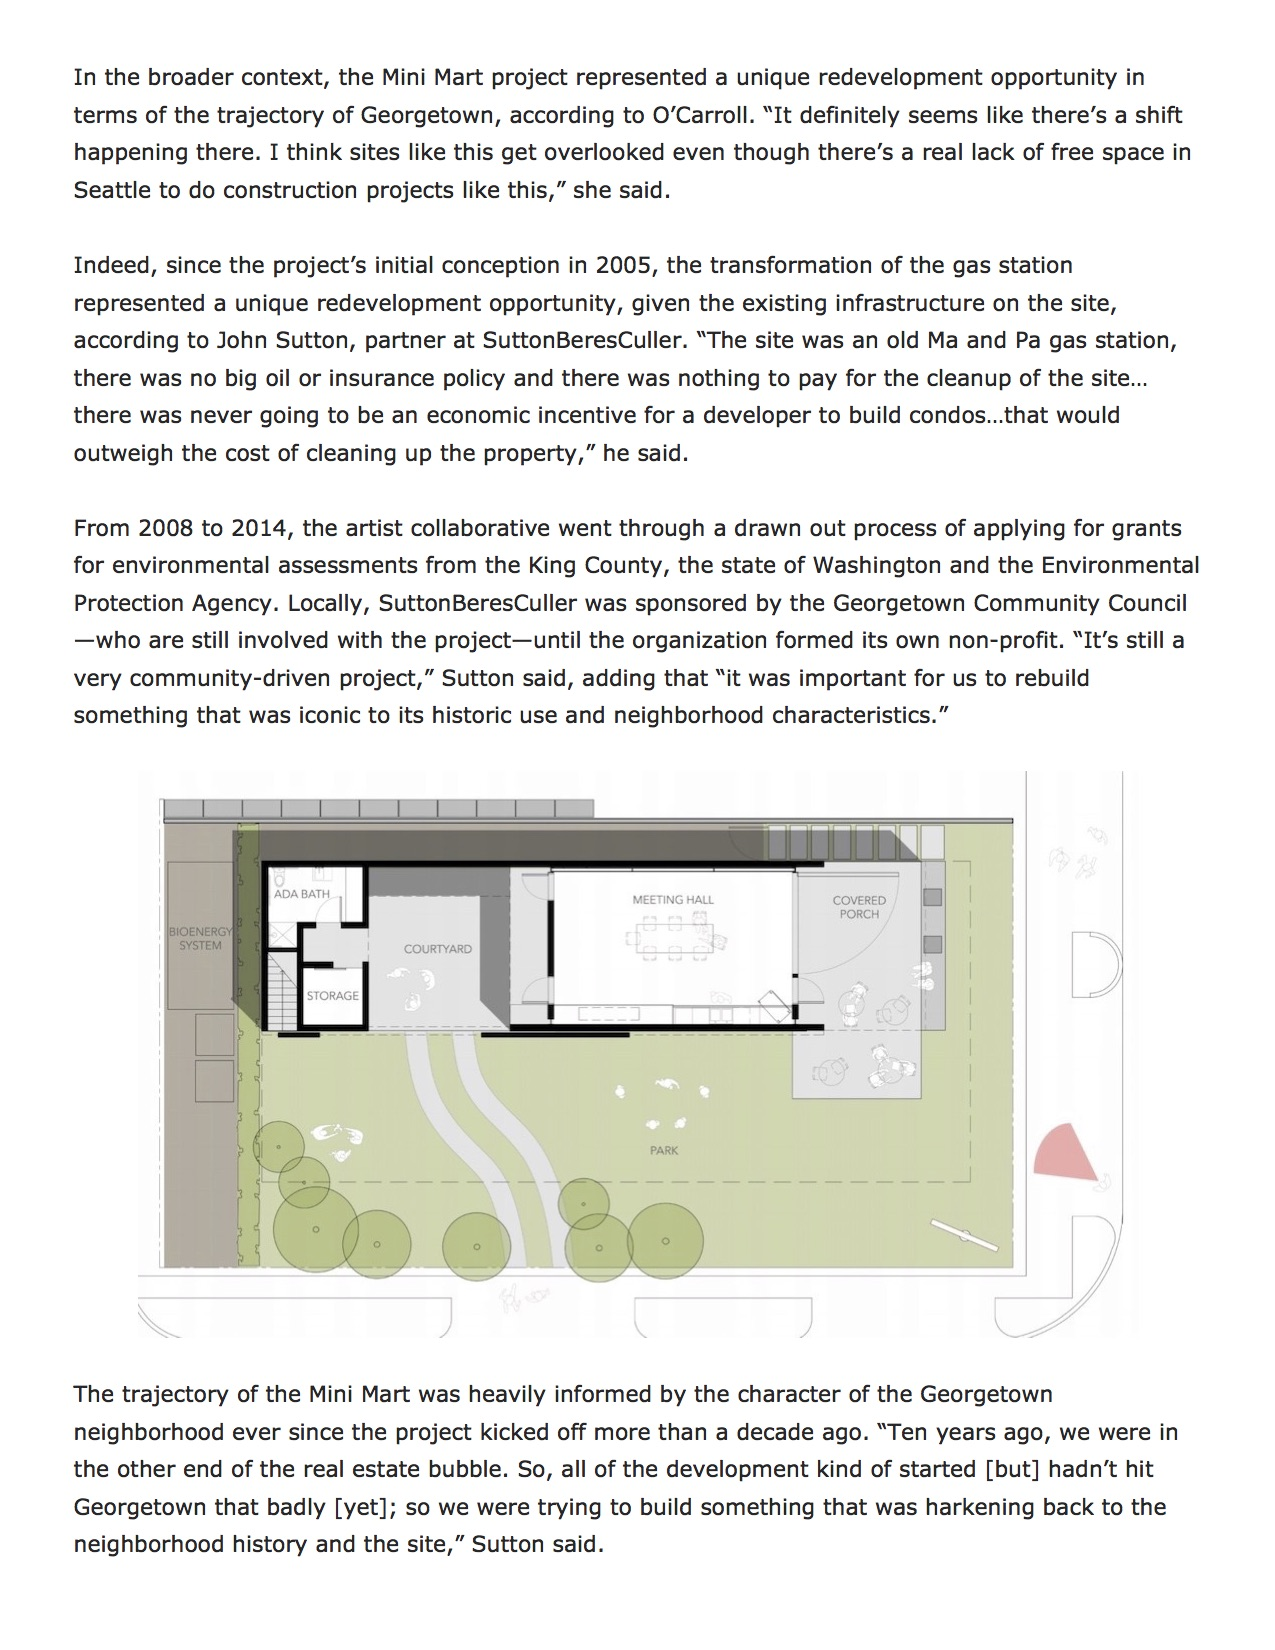 Mini Mart City Park Project in Georgetown Brings Cultural Arts Center to an Evolving Neighborhood - The Registry pg4.jpg